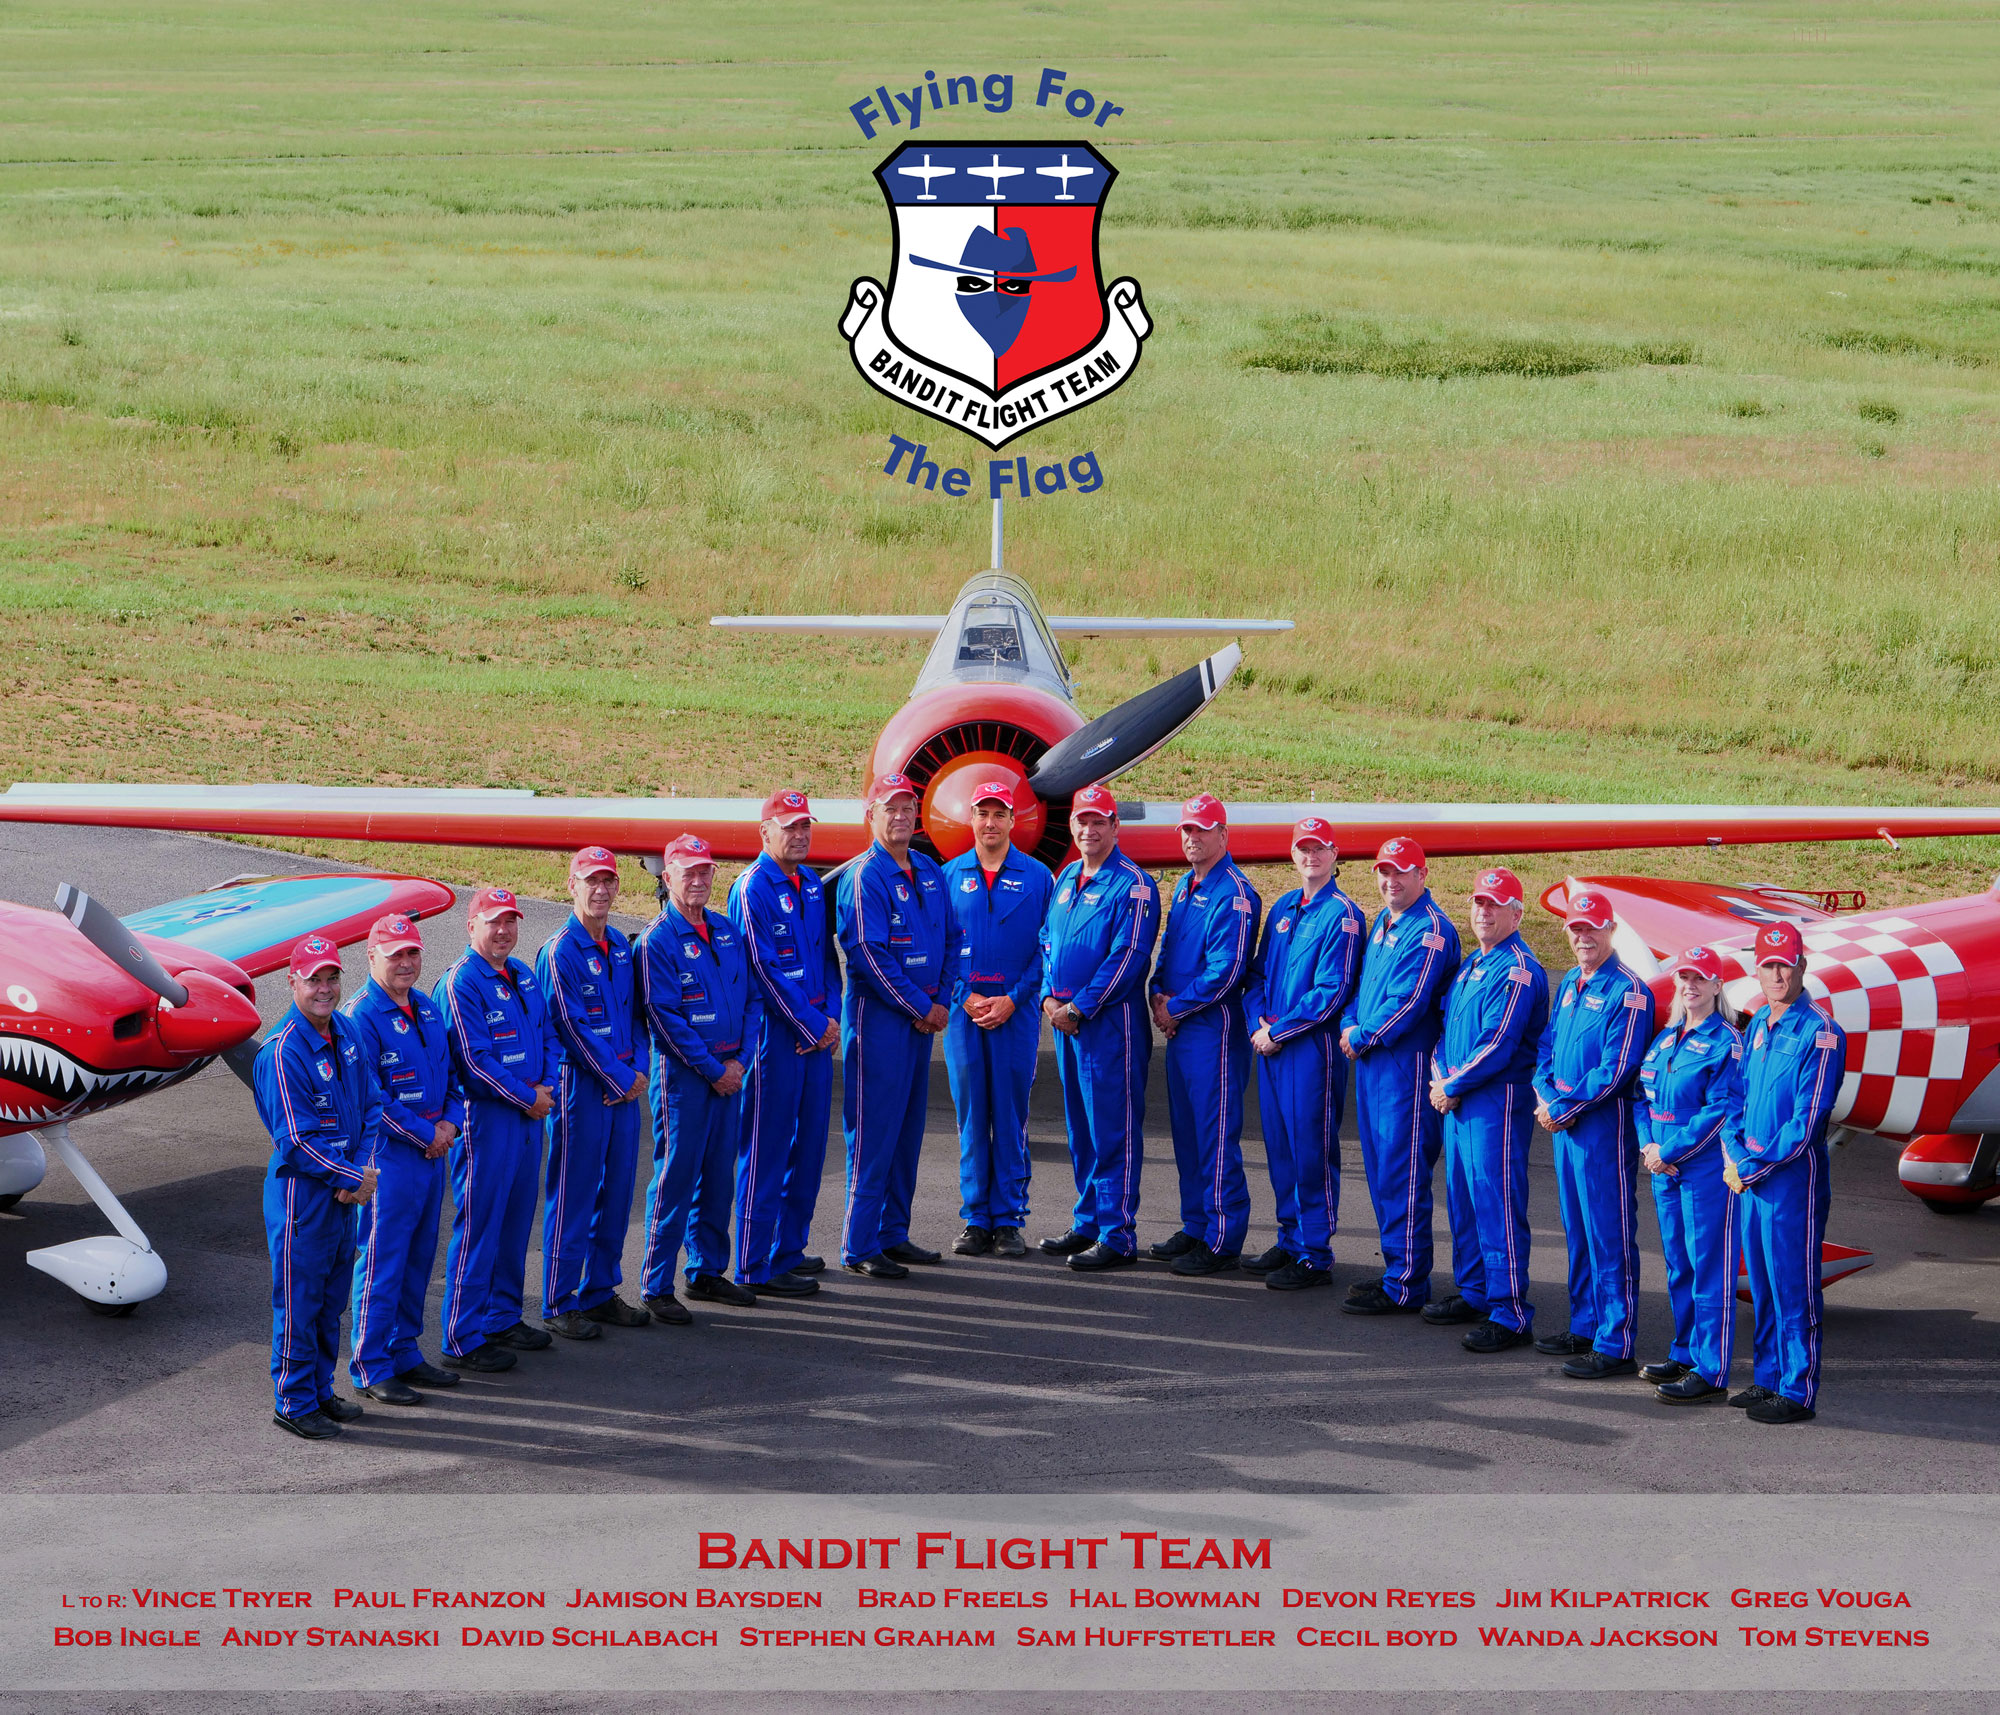 2019-Bandit Flight Team Photo